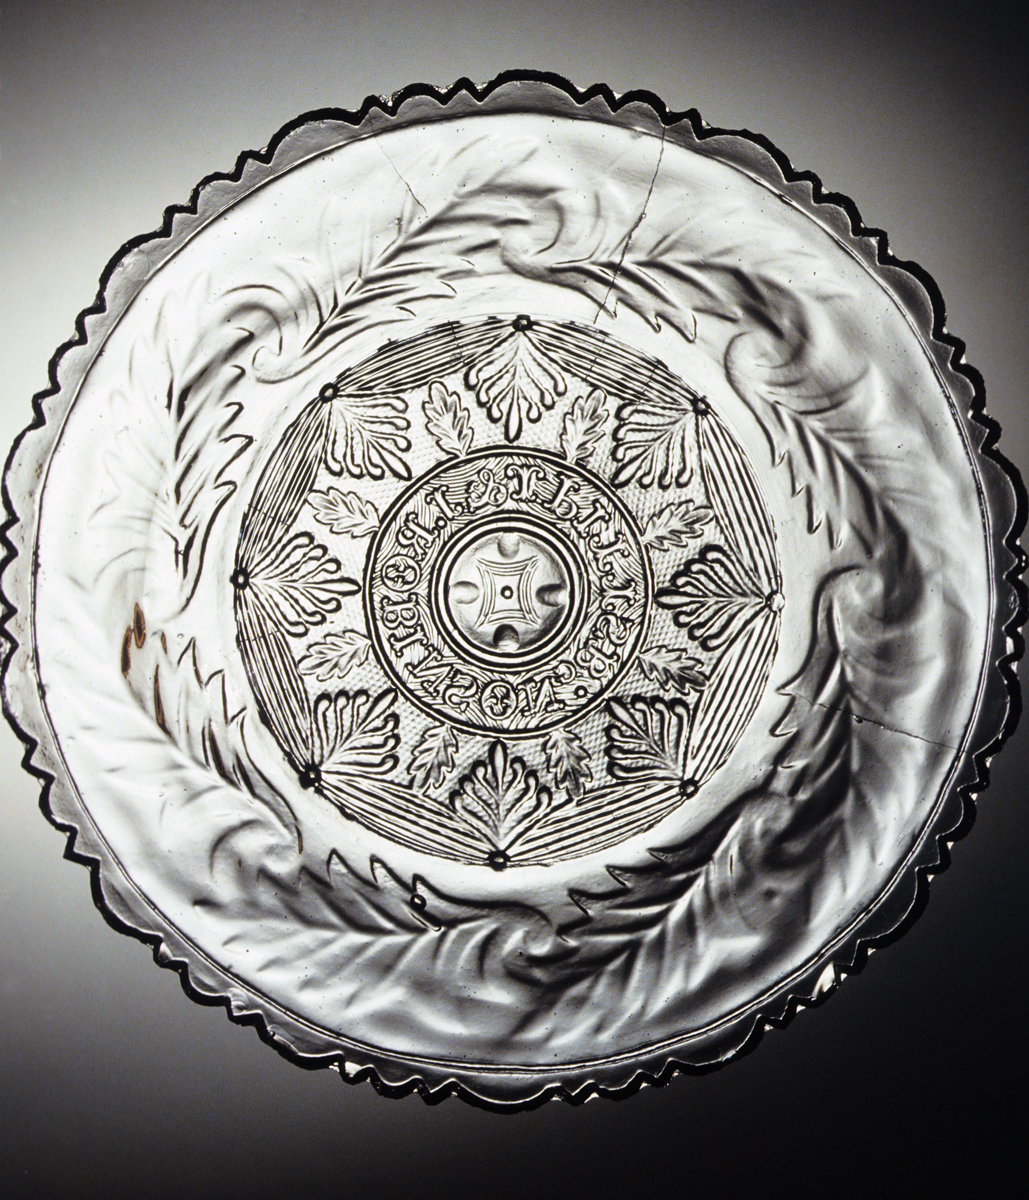 1978.0042 Colorless nonlead glass plate